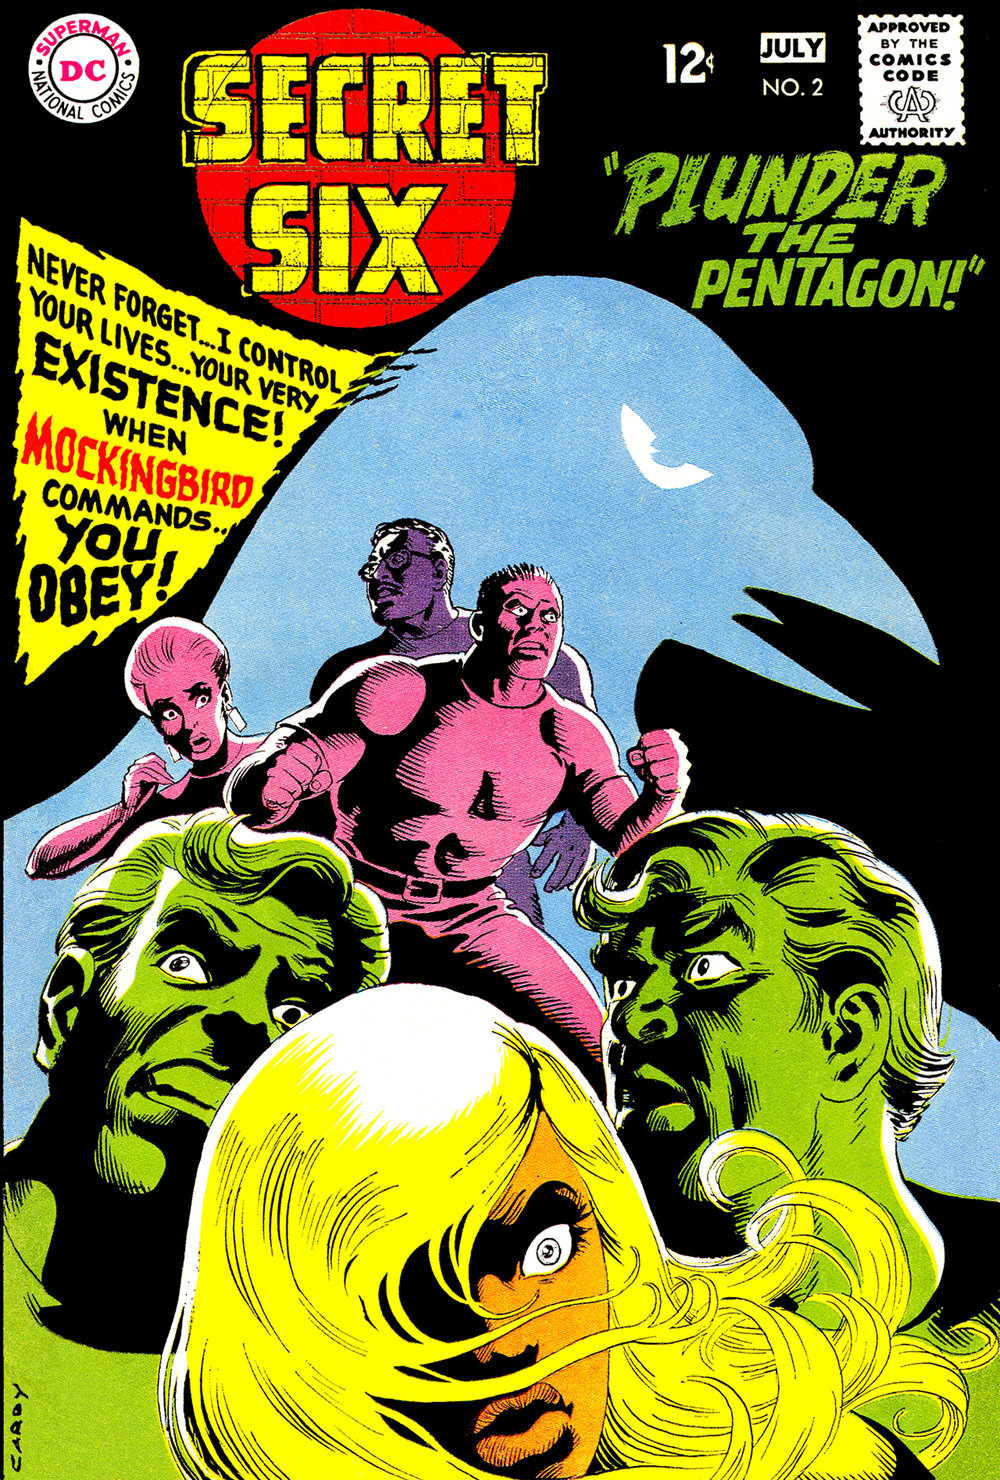 Secret Six (1968) #2, cover by Nick Cardy.